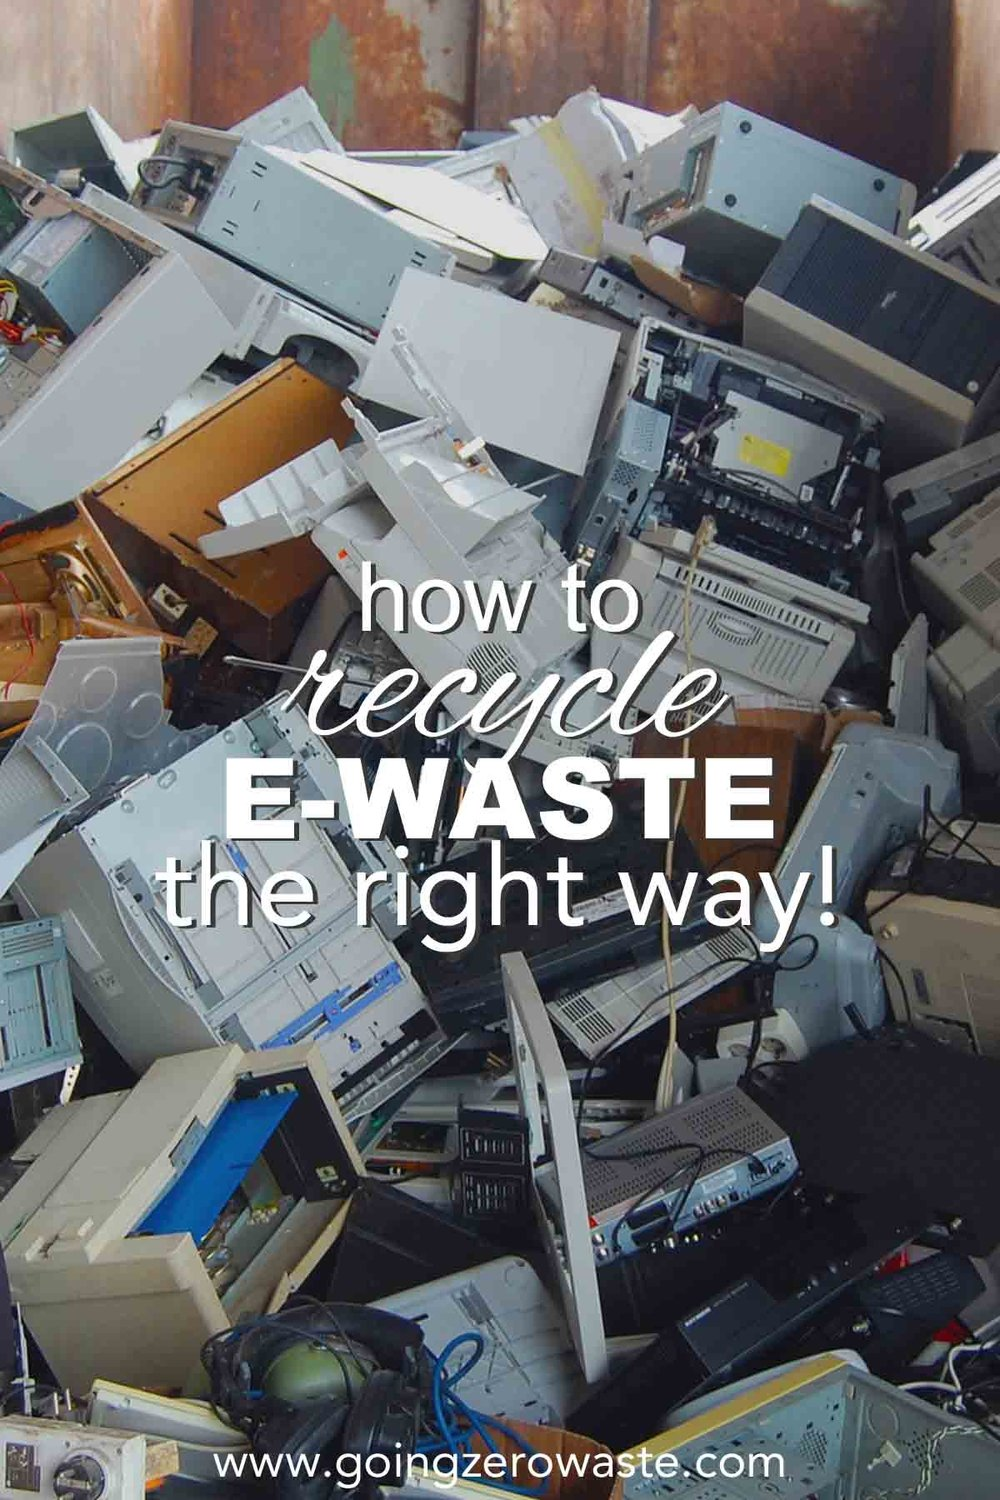 How to recycle e-waste the right way from www.goingzerowaste.com